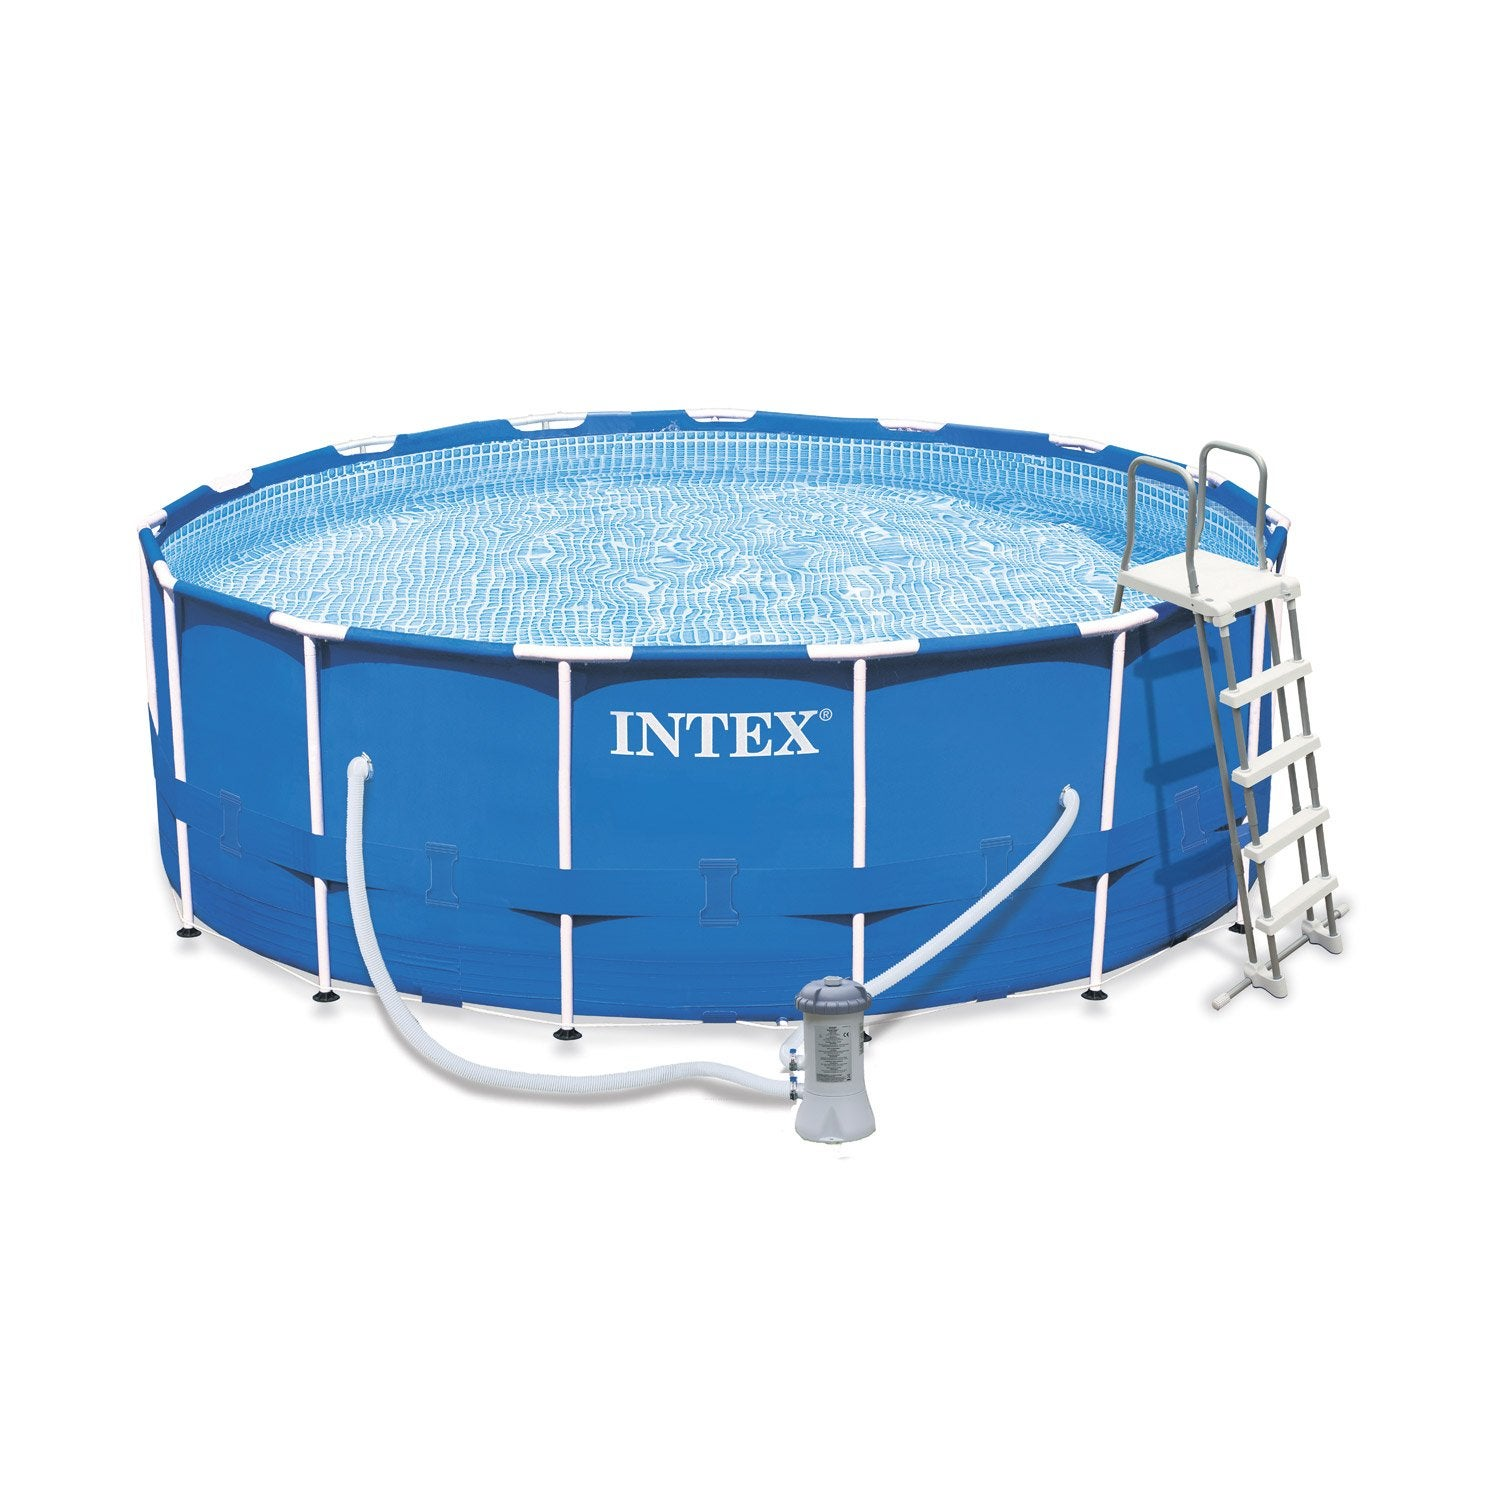 Piscine hors sol autoportante tubulaire metal frame intex for Piscine tubulaire intex castorama